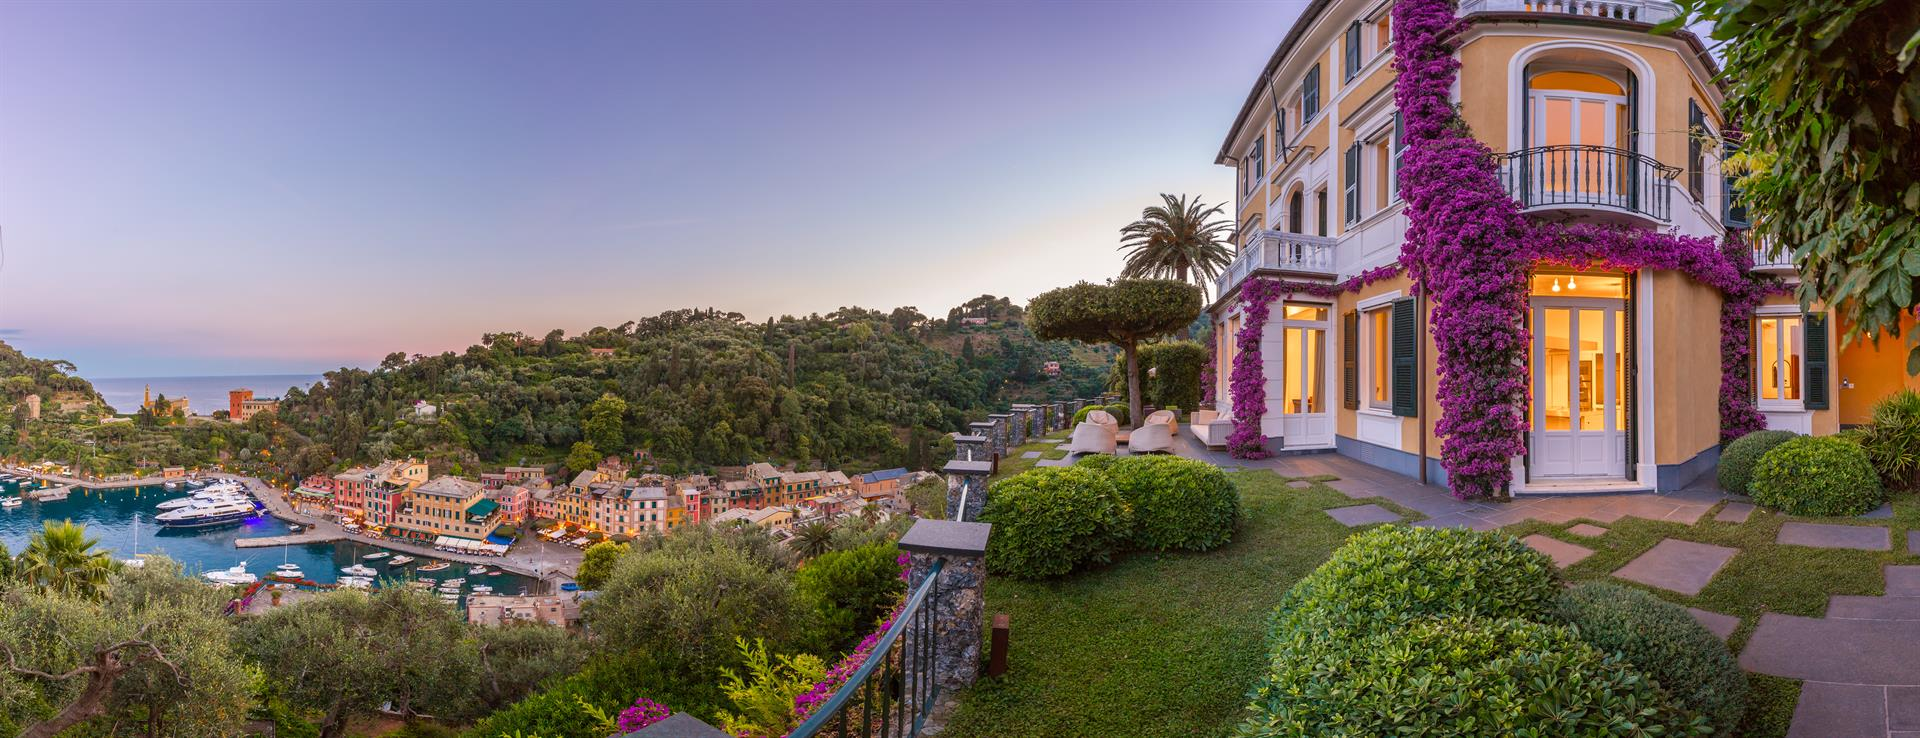 Luxury Homes For Sale In Genoa Italy